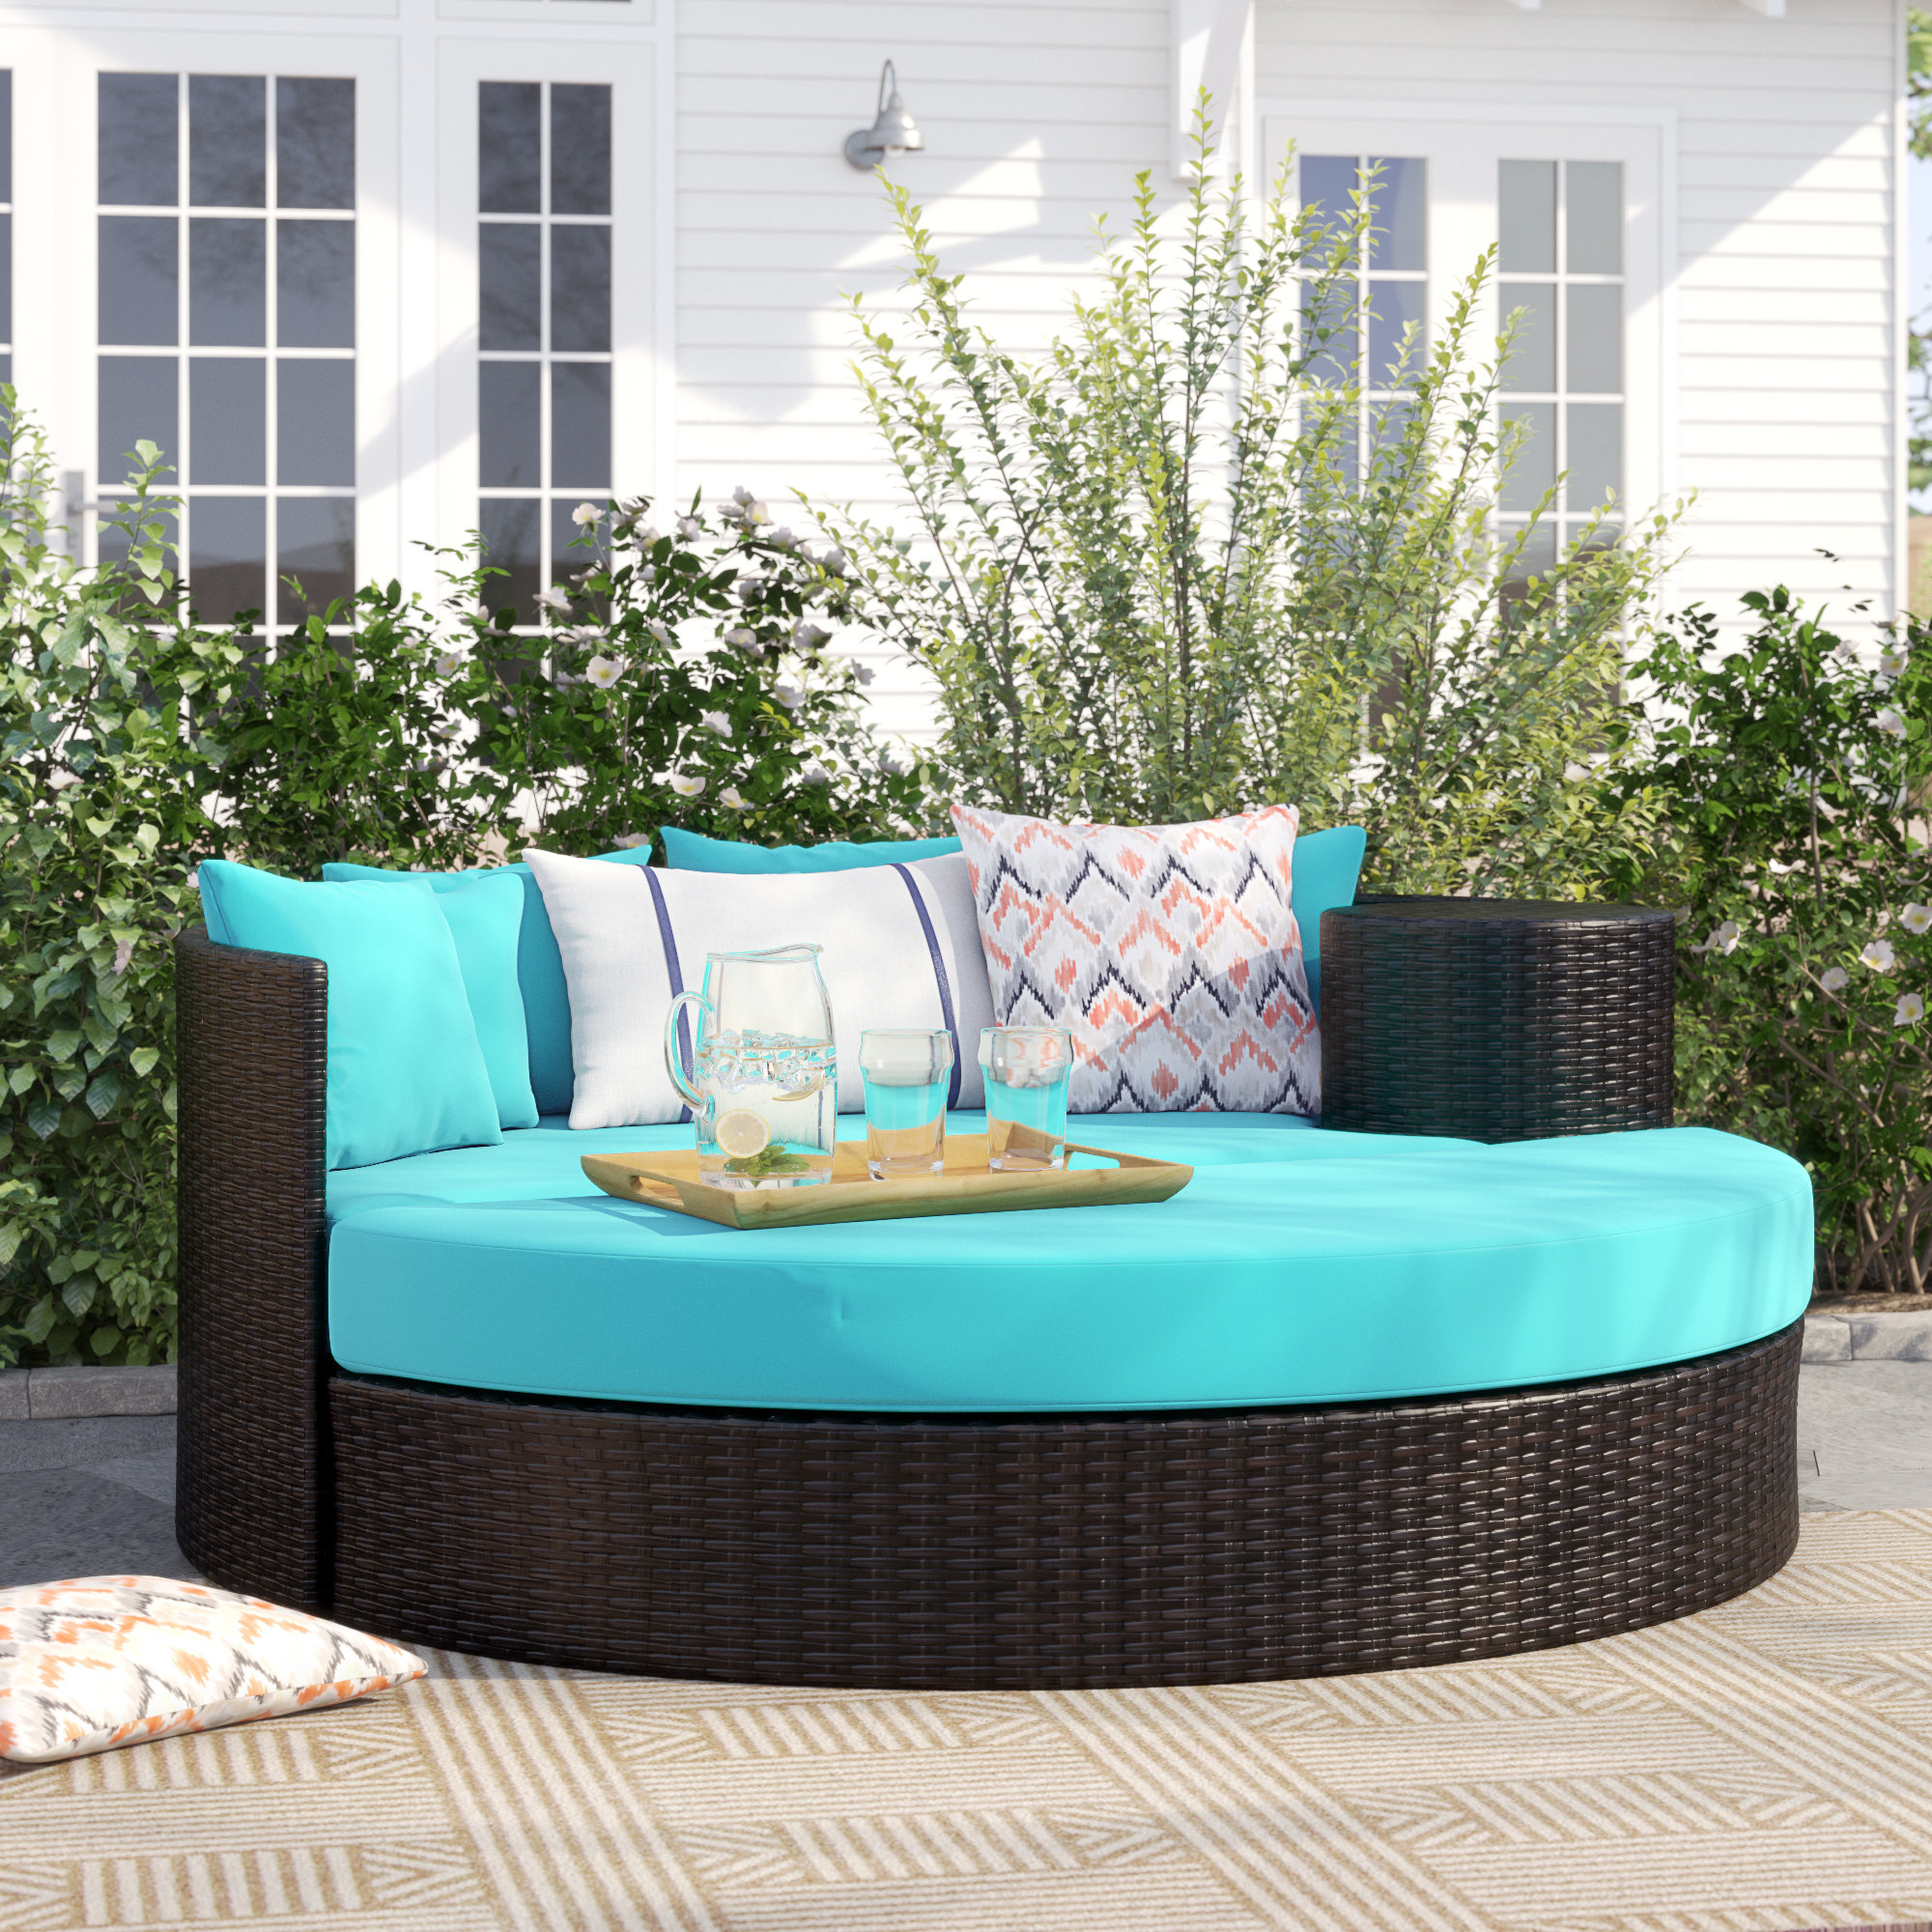 Sol 72 Outdoor Freeport Patio Daybed With Cushion & Reviews Regarding Popular Brentwood Canopy Patio Daybeds With Cushions (View 19 of 25)